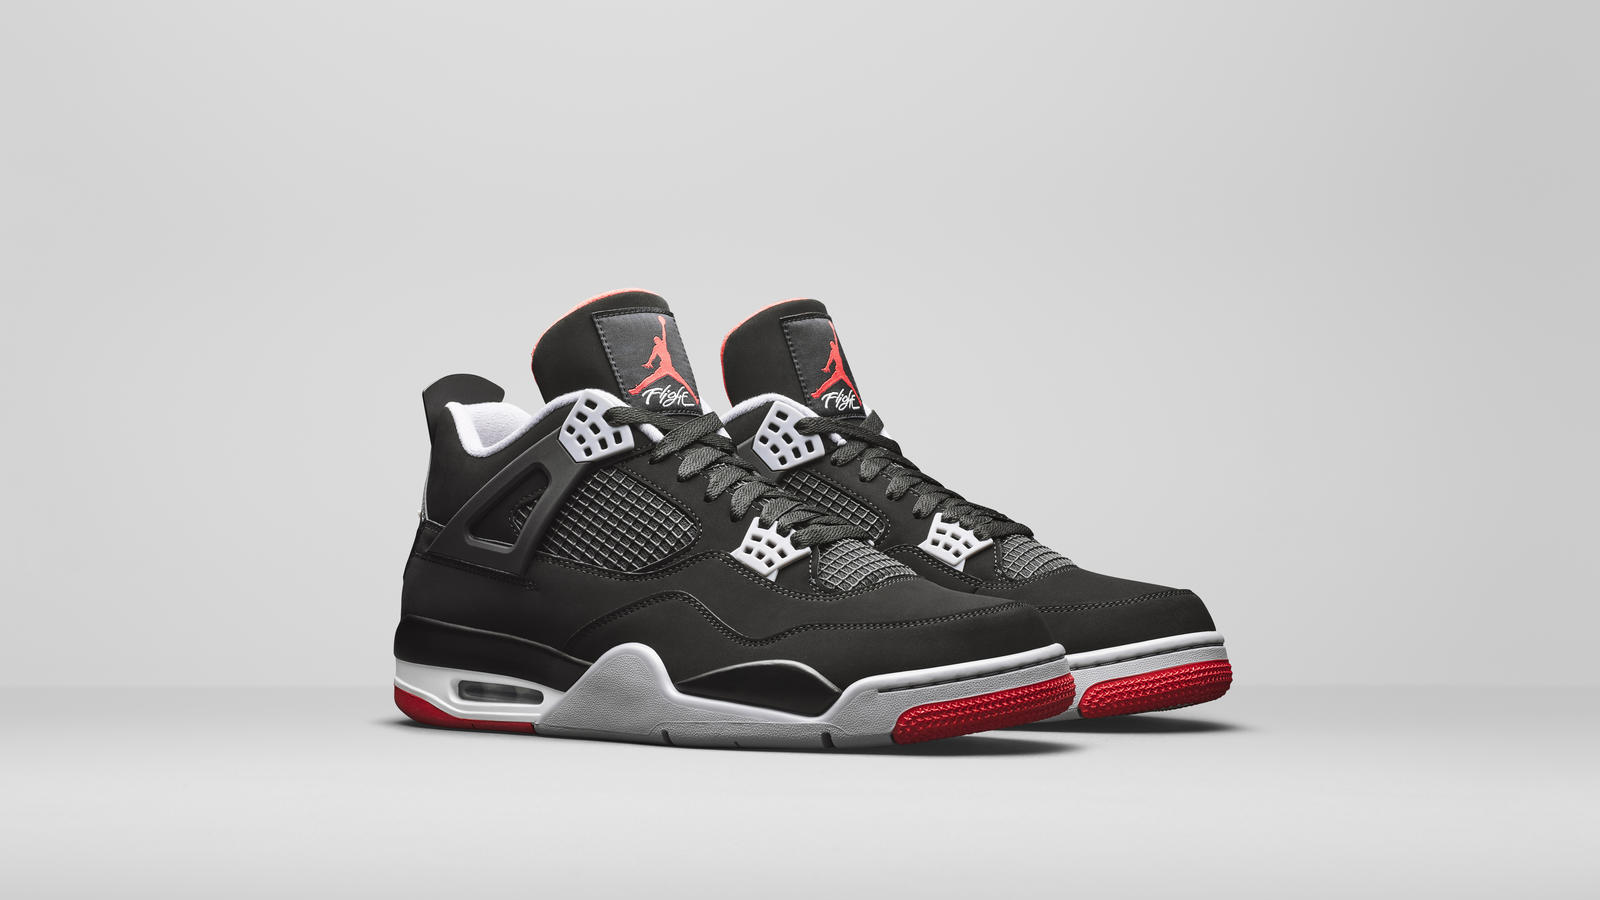 Air Jordan 4 Bred Official Images and Release Date 5